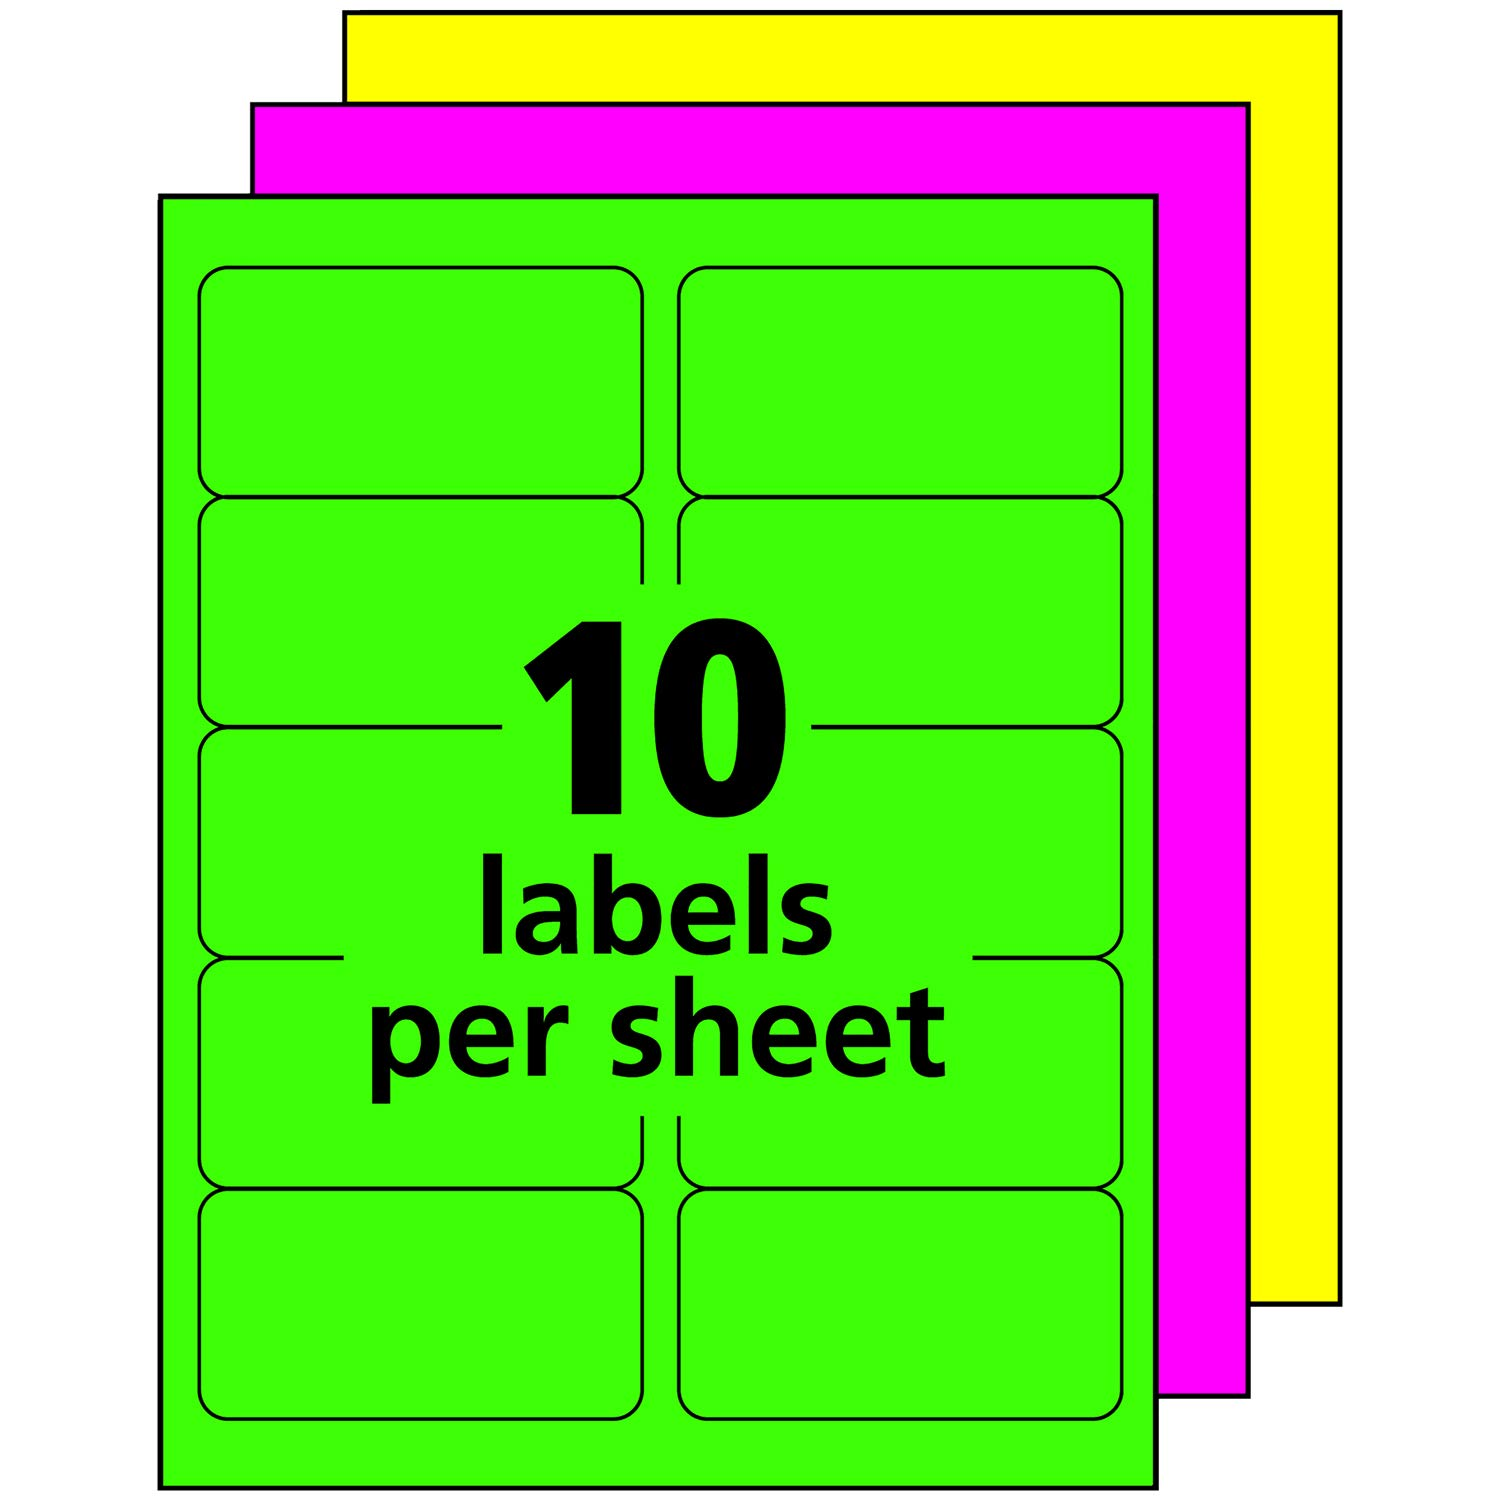 Avery High-Visibility Neon Shipping Labels for Laser Printers 2'' x 4'', Assorted Colors, Box of 1,000 (5964) by Avery (Image #7)